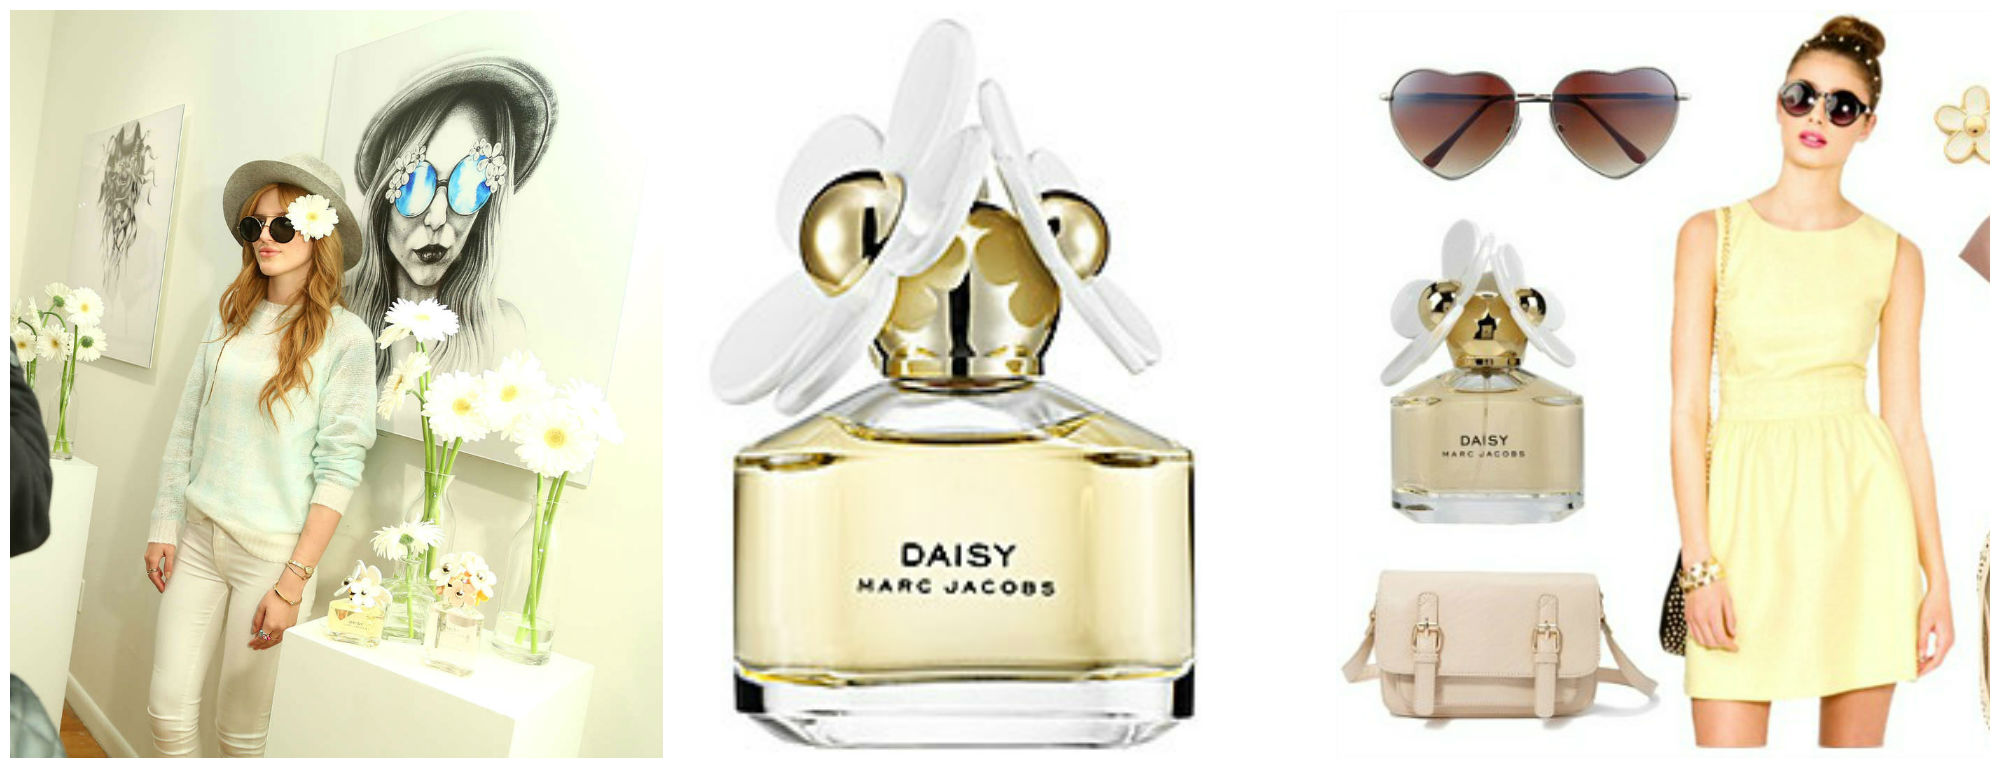 Perfume of the Day: Daisy by Marc Jacobs